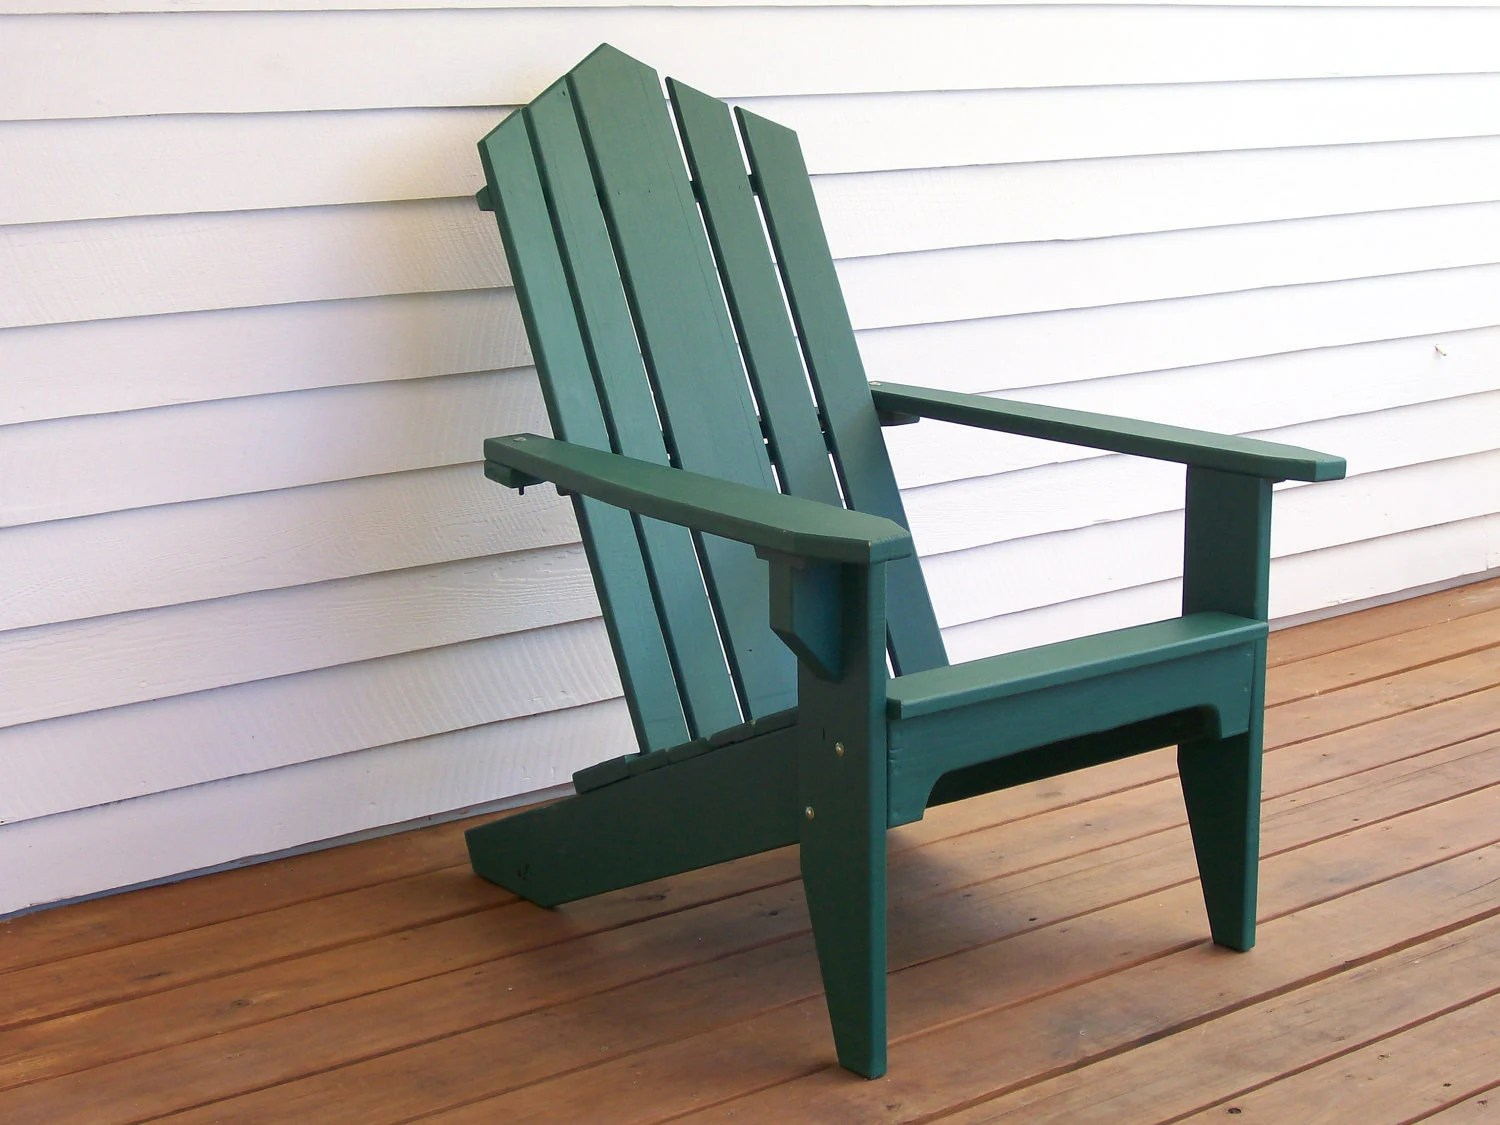 Wood Outdoor Chairs Adirondack Chair Wood Deck Chair Outdoor Wood Chair Wood